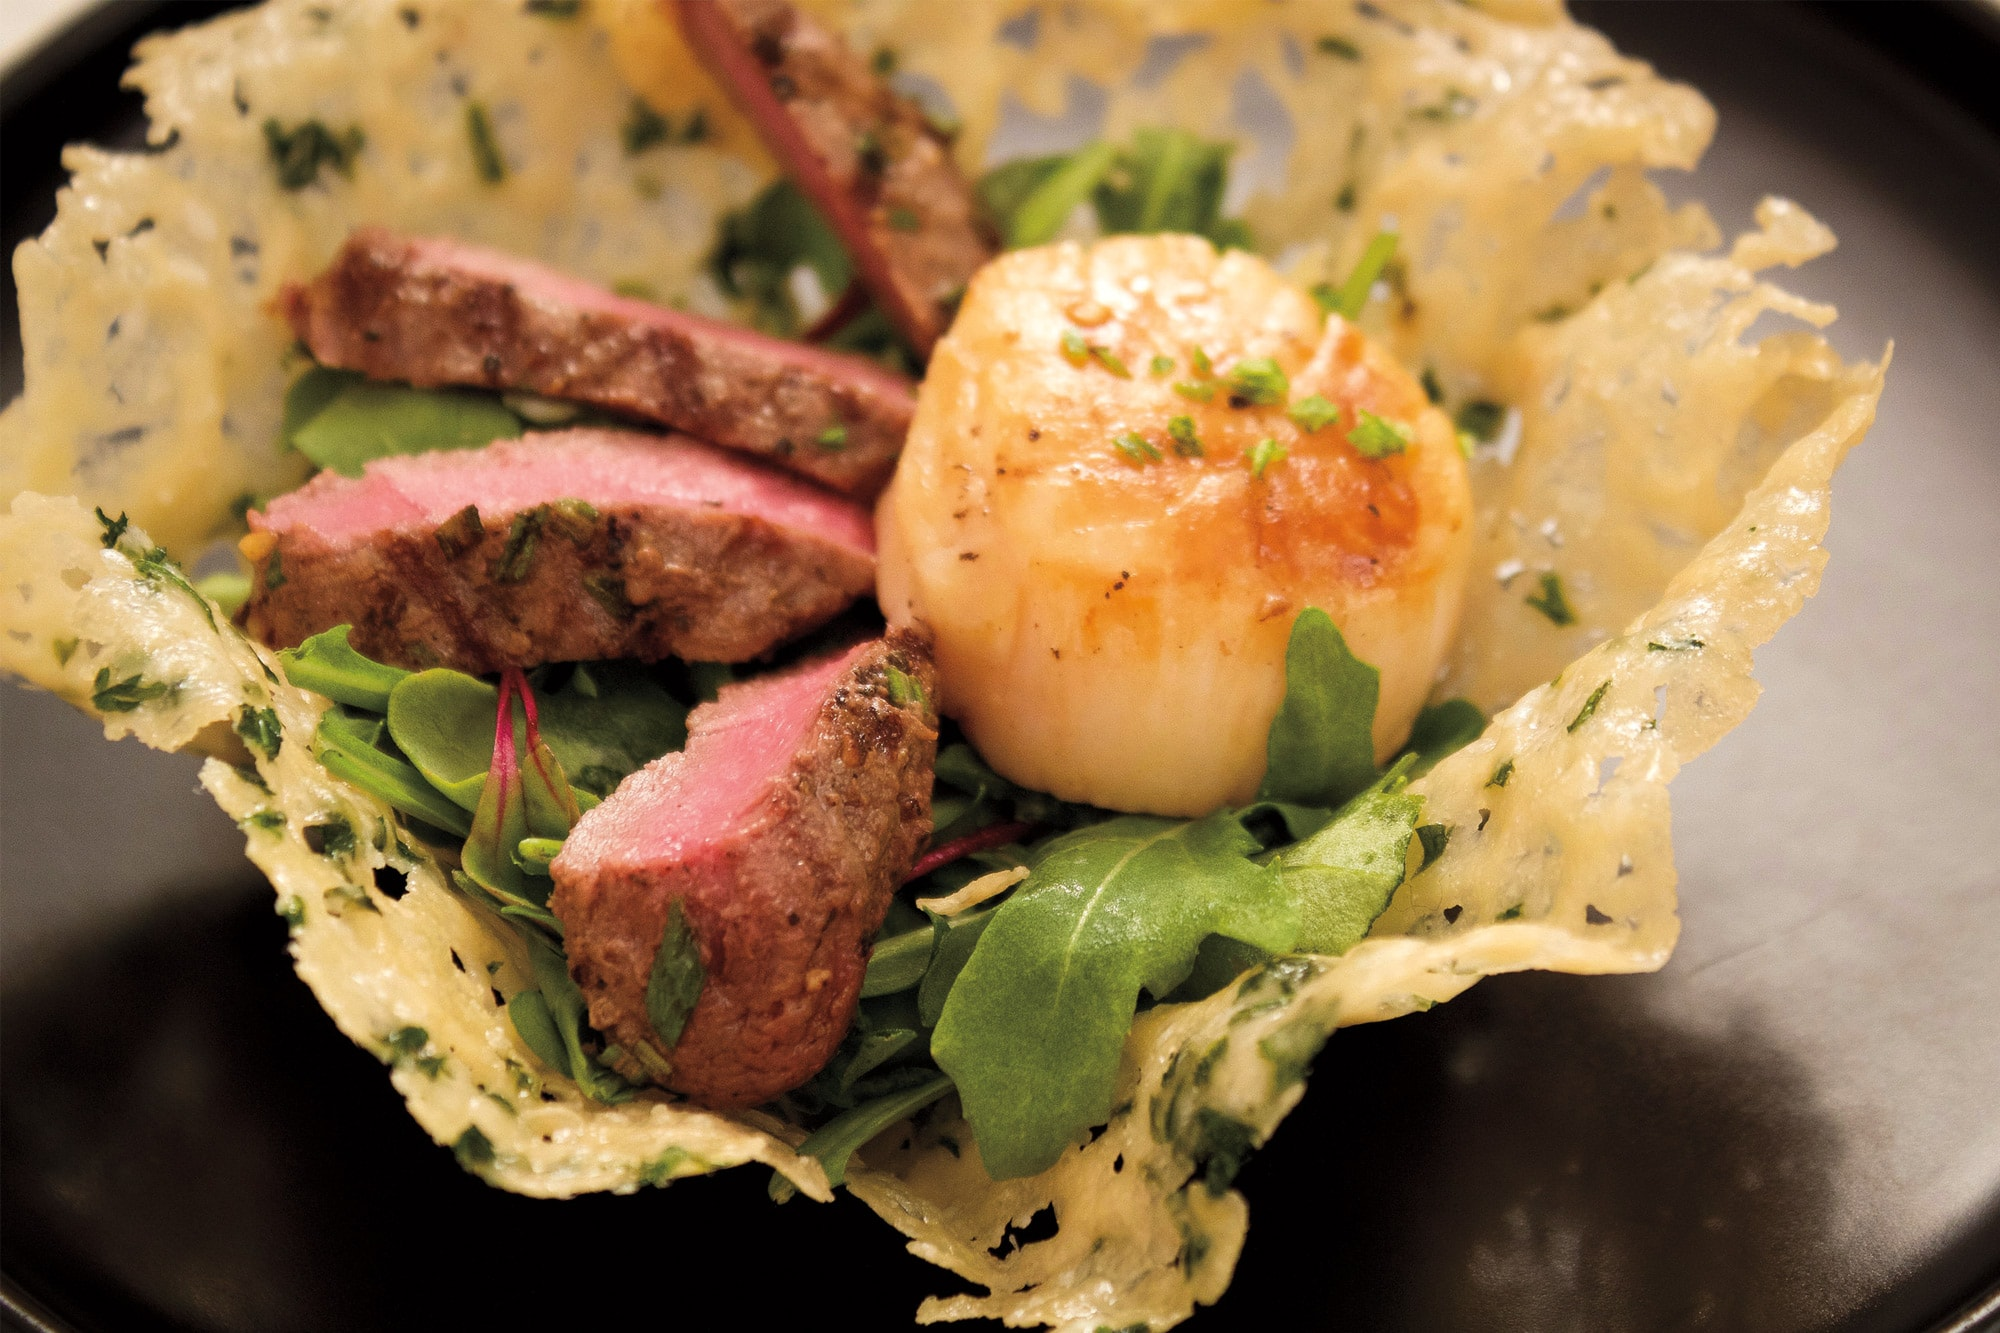 Recipe: Elk and Sea Scallops in a Parmesan Cup with Chili Lime Vinaigrette